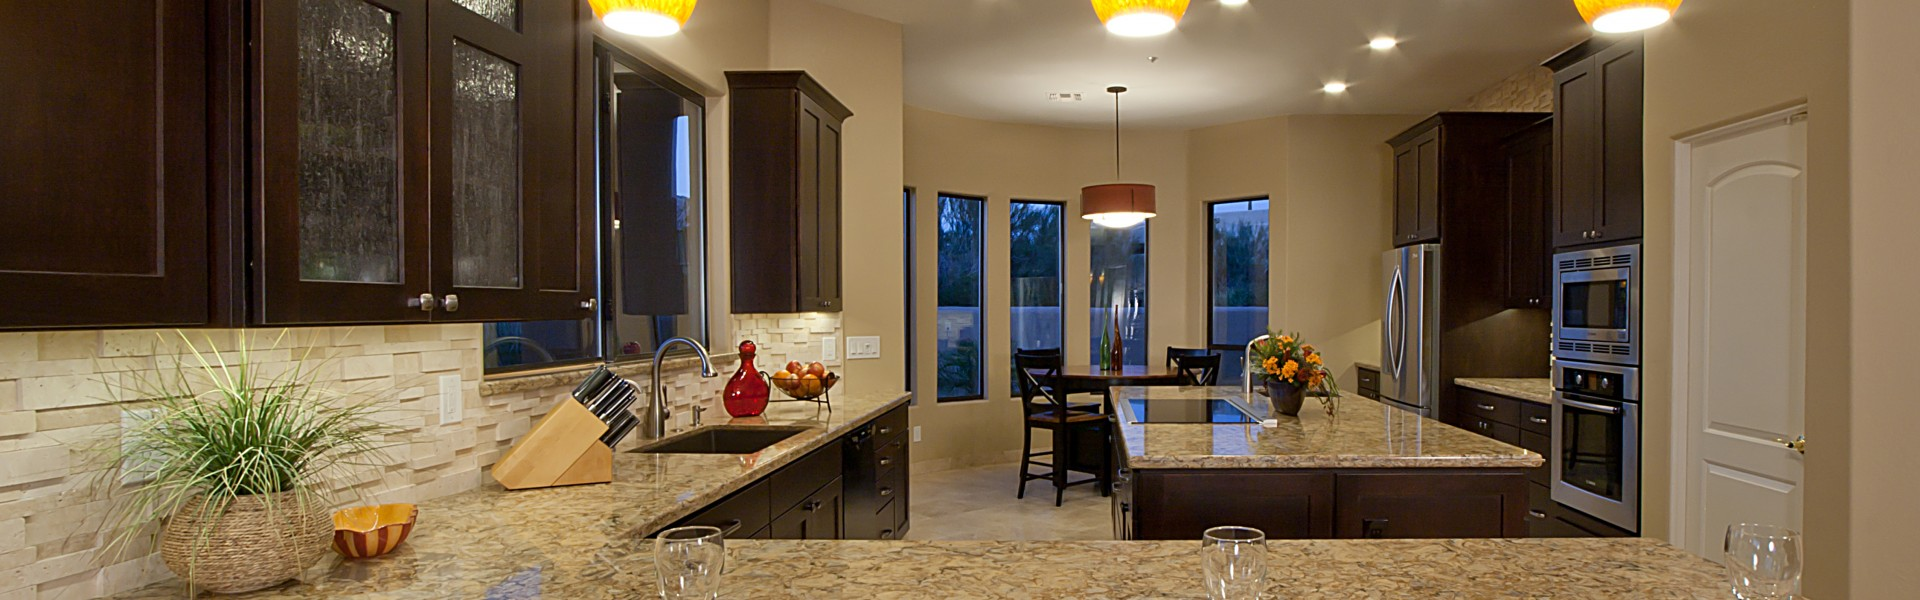 Kitchen Interior Design Interior Design Kitchen Remodel Bath Remodeling Custom Home